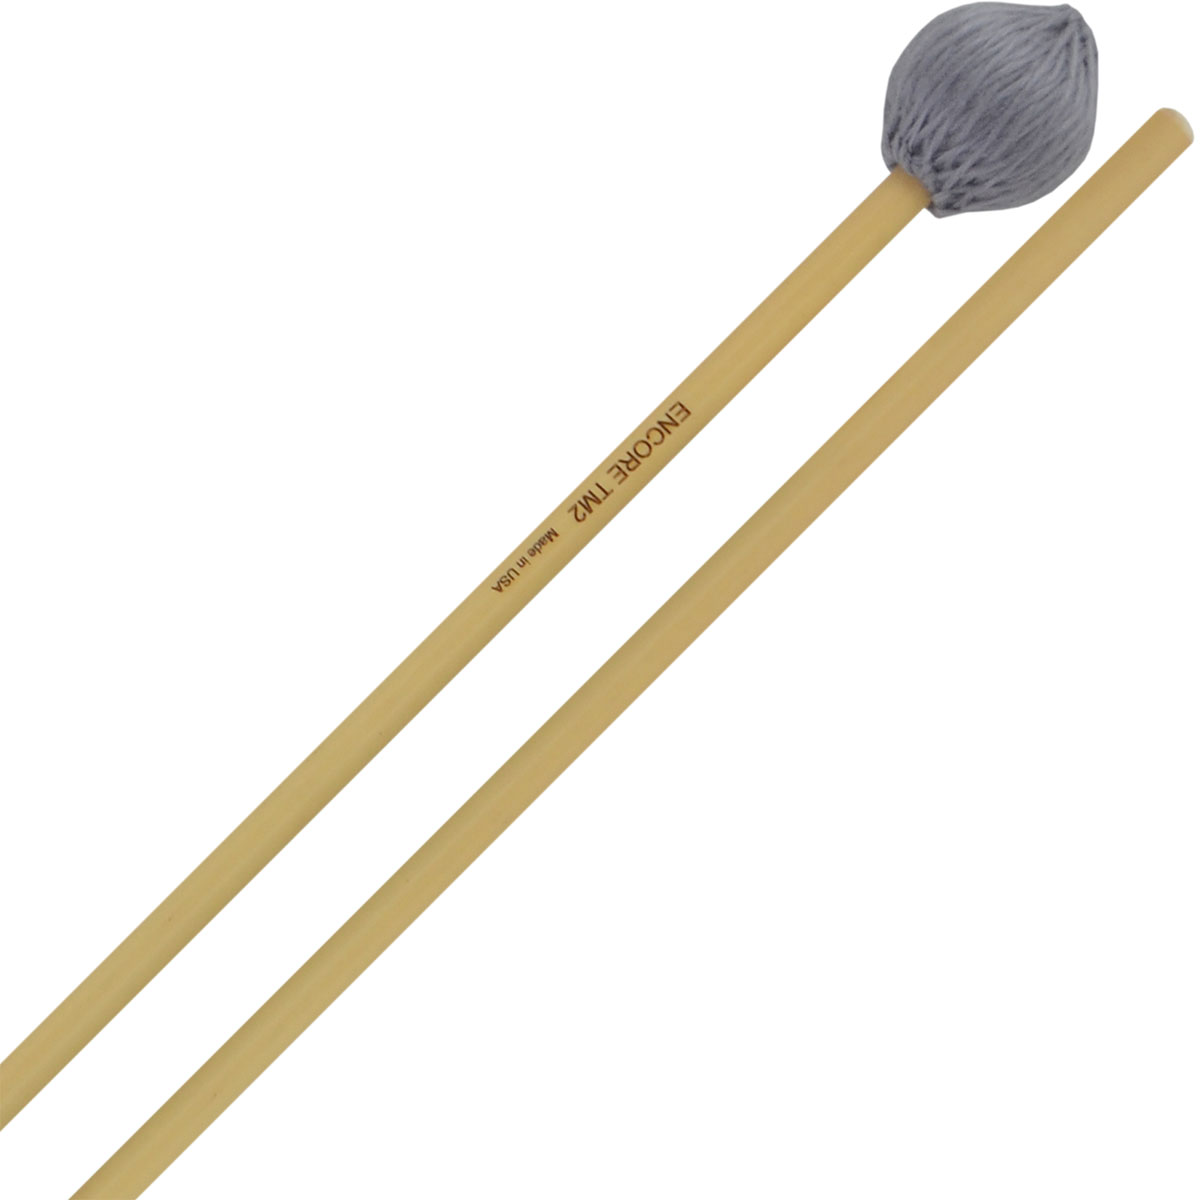 Encore Two Mallet Series General Marimba Mallet with Rattan Handles